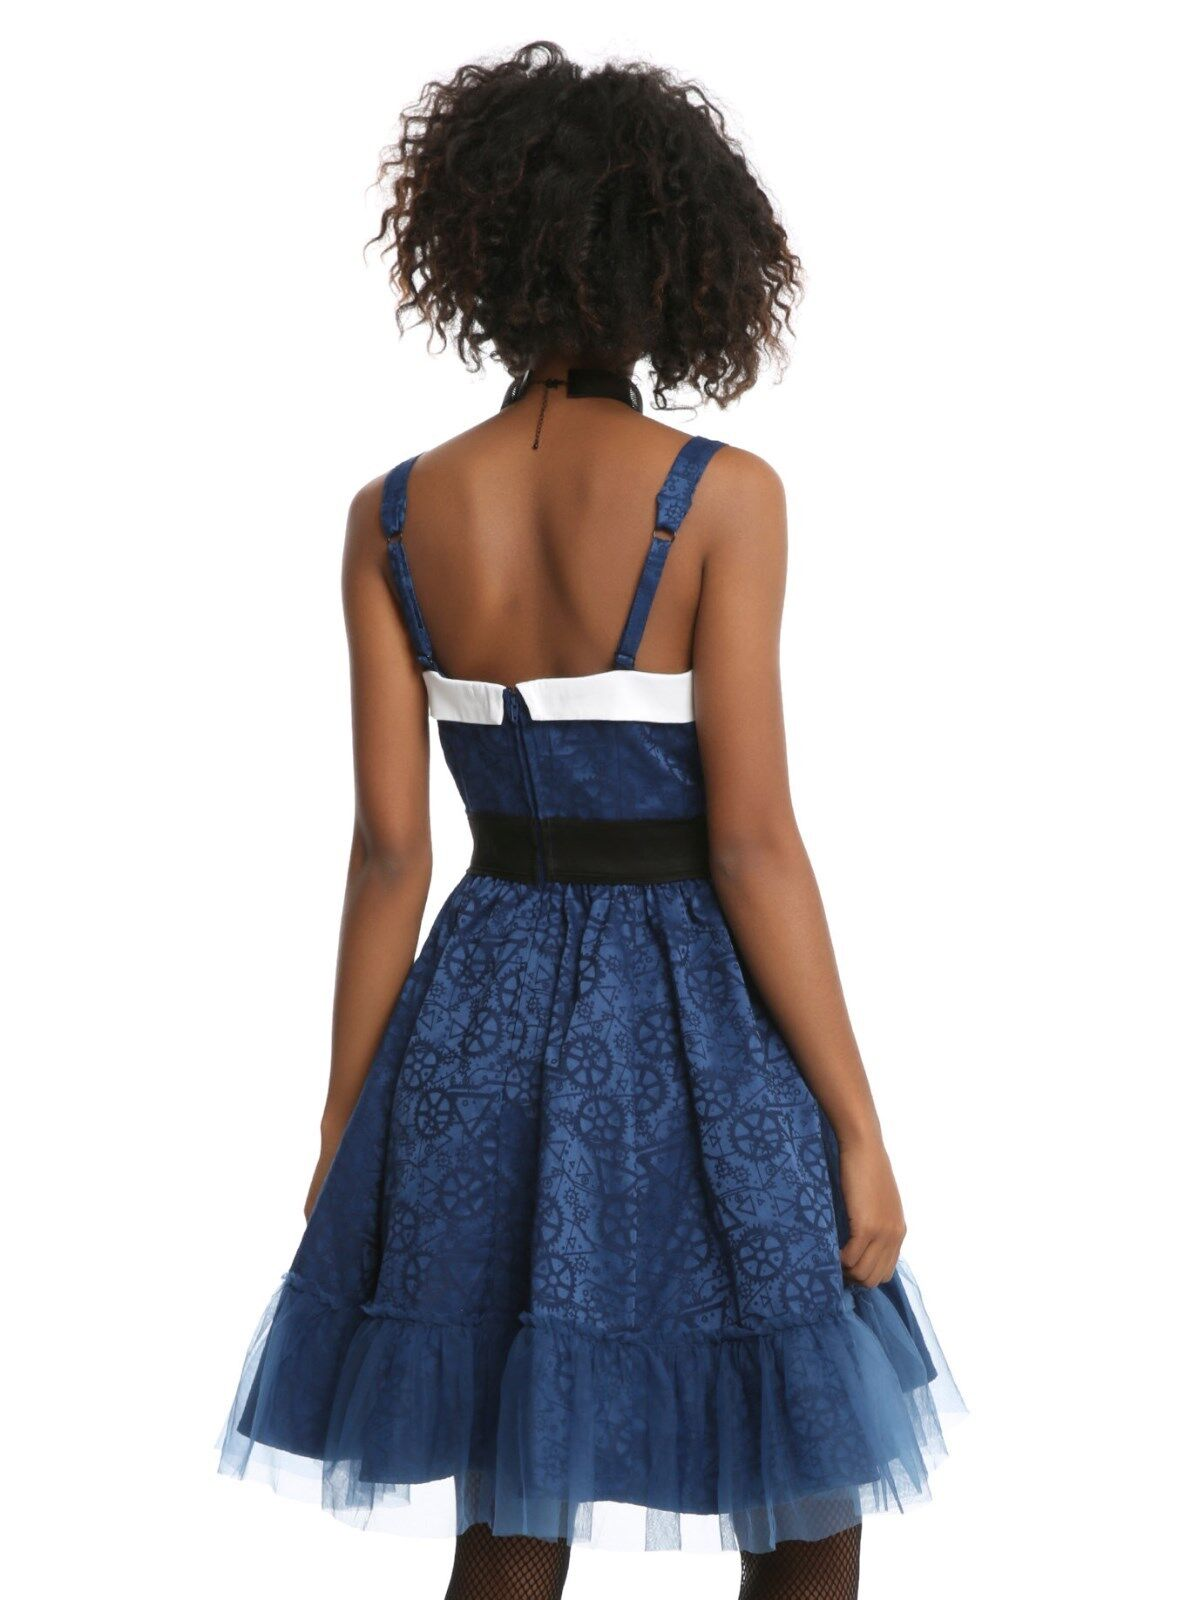 BBC Doctor Dr Who Tardis Public Call Box Fit Fit Fit Flare Cosplay Dress JUNIORS MEDIUM 26d4c5